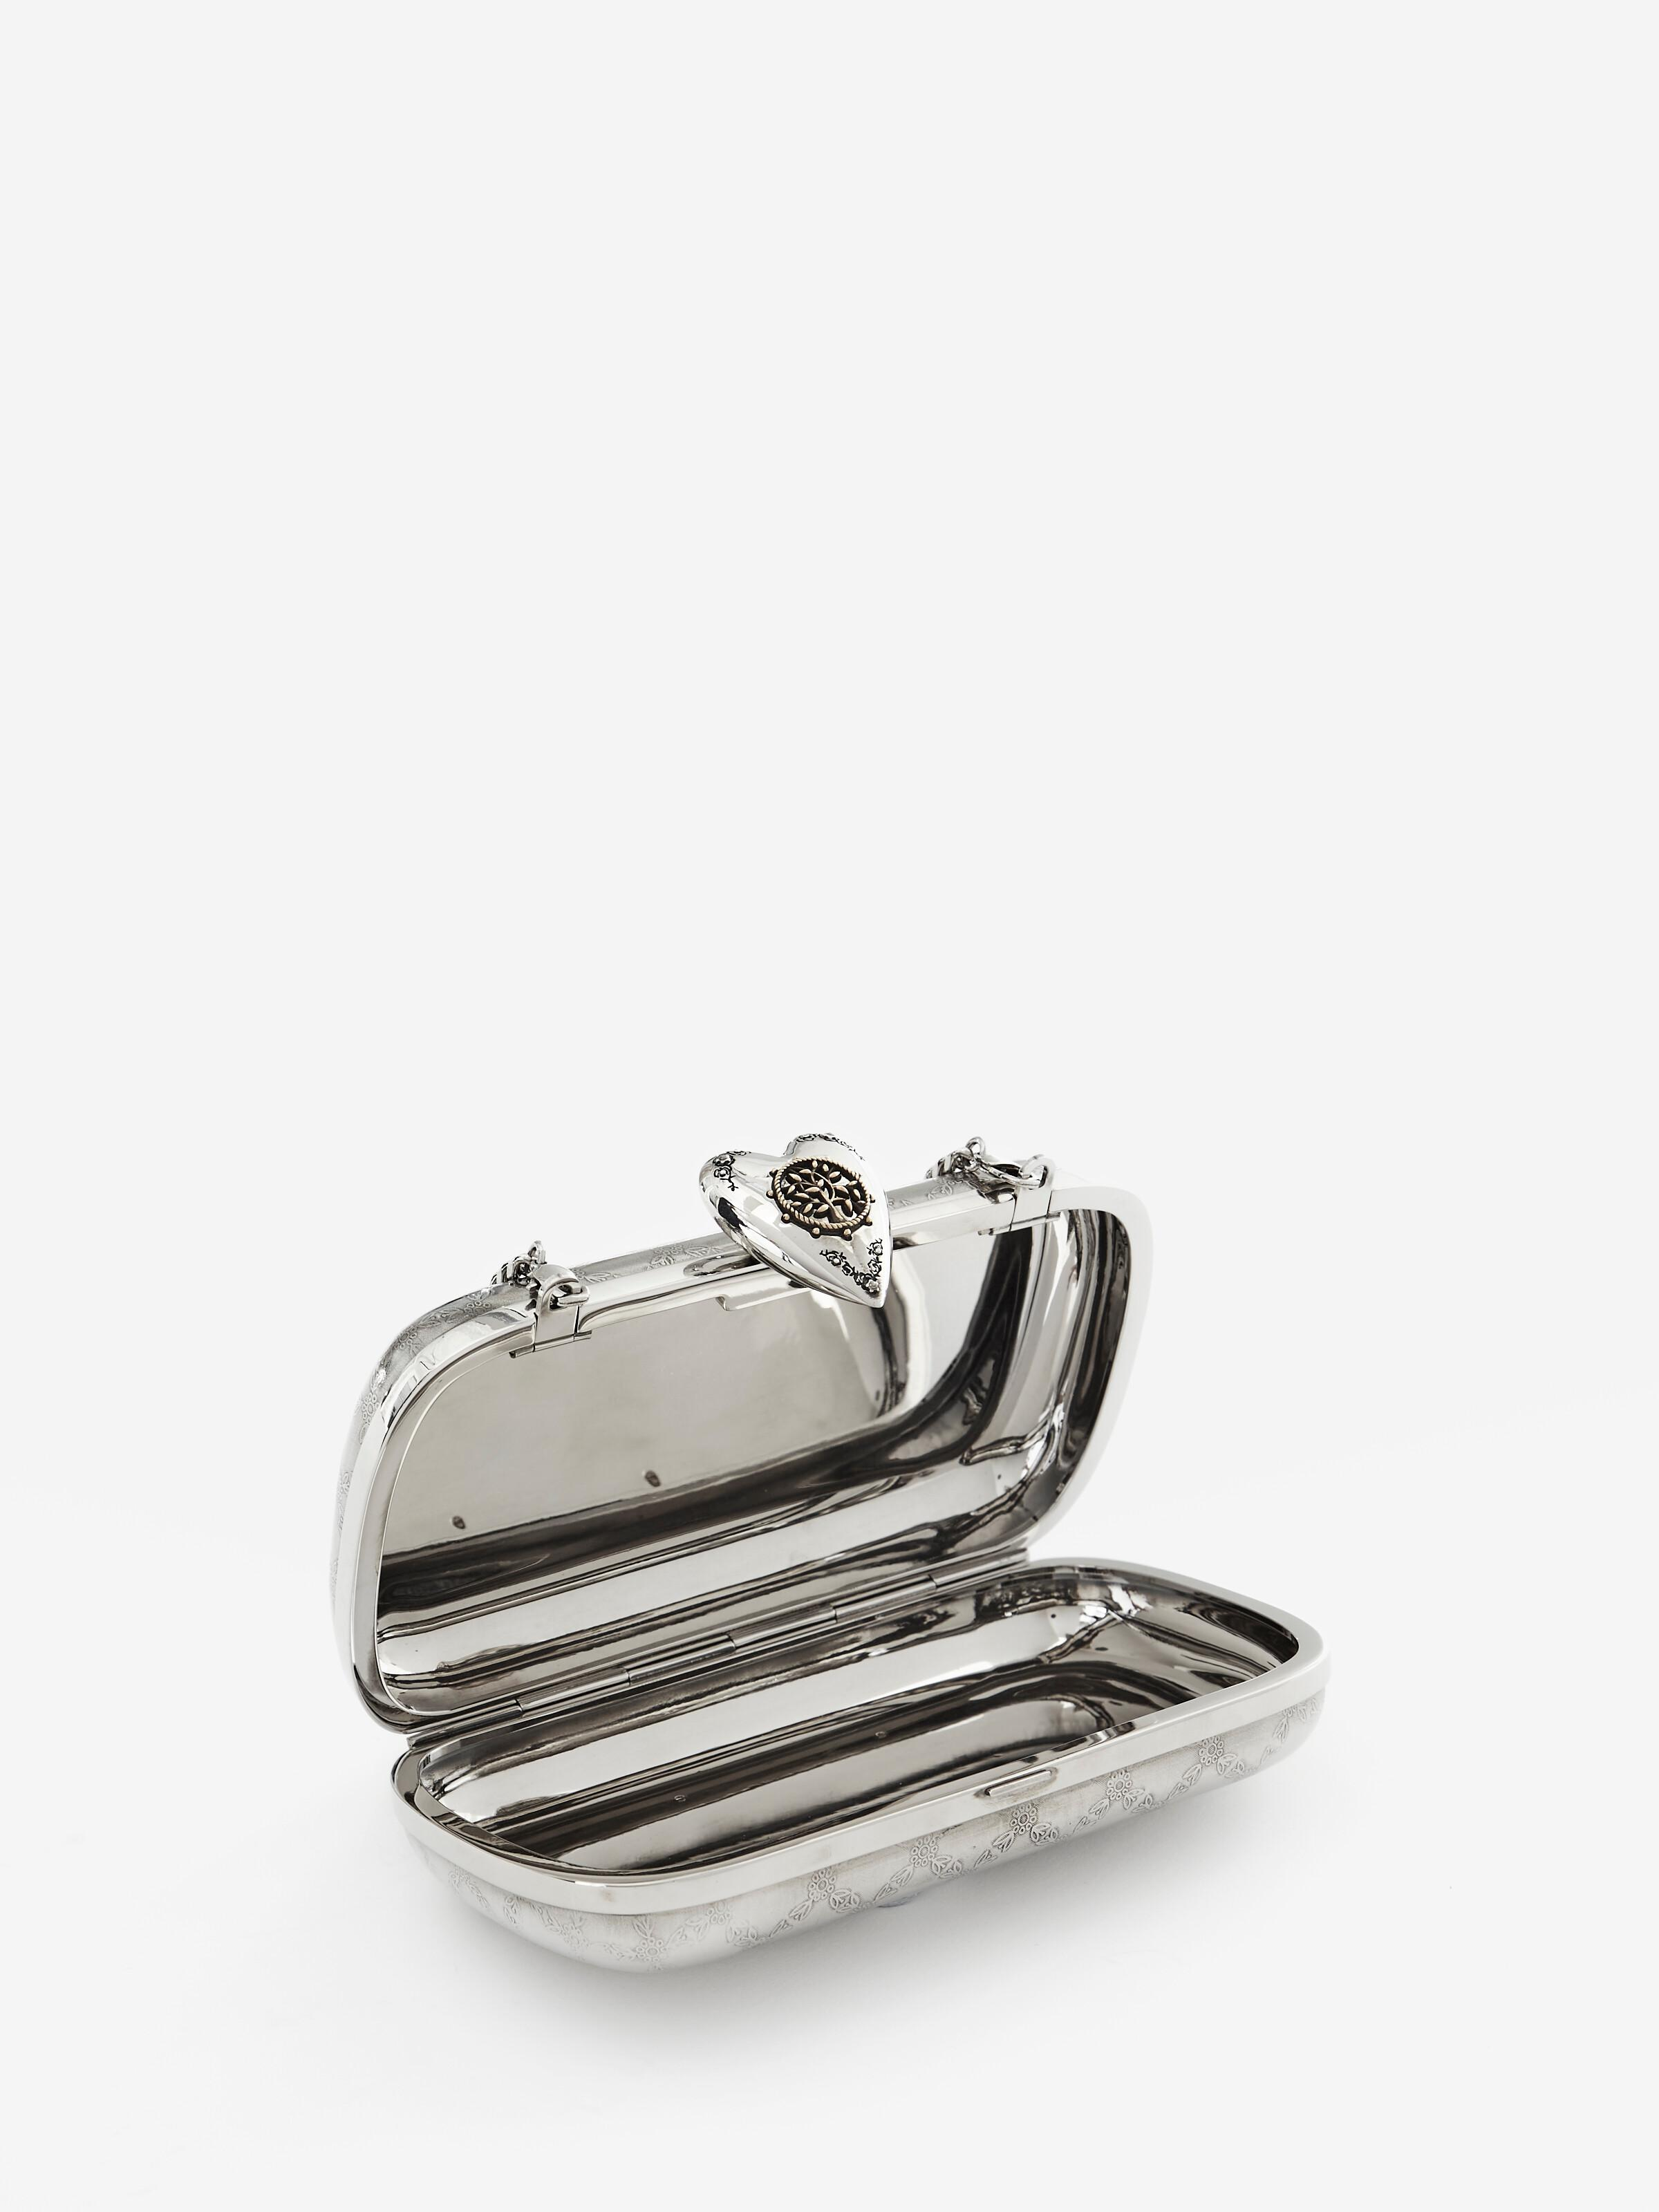 Engraved Heart Clutch 3